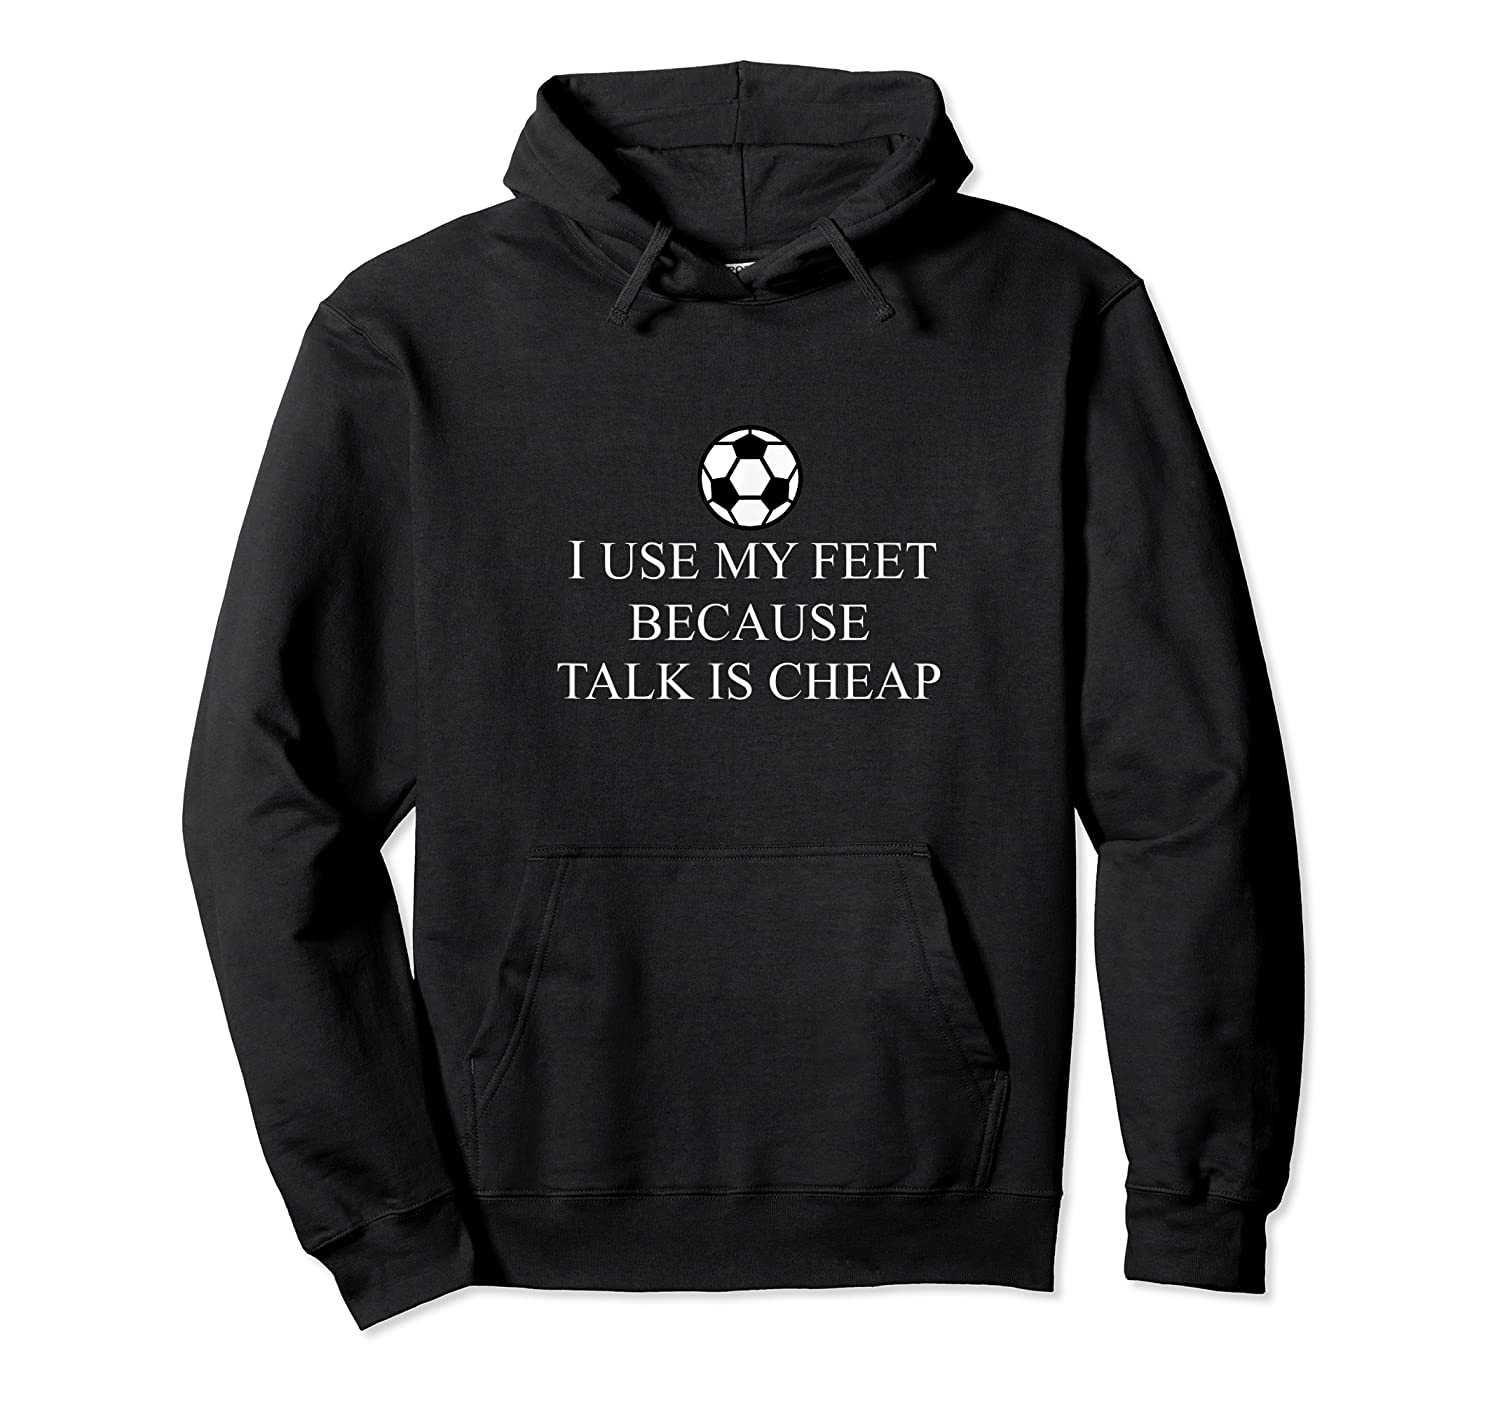 Use My Feet Because Talk Is Cheap Funny Soccer Quote Shirts Unisex Pullover Hoodie